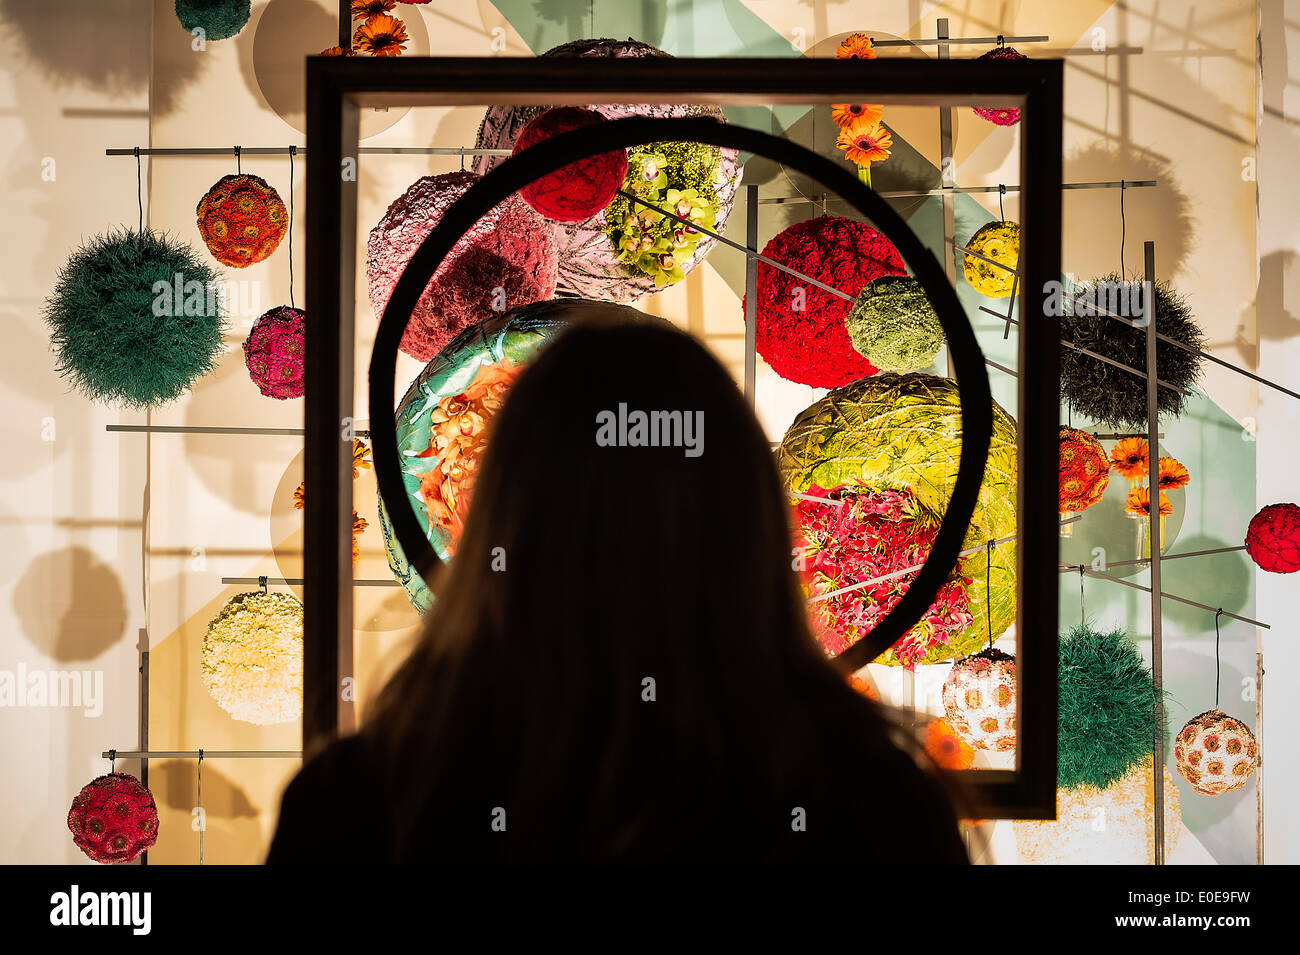 Woman admires flower art at a gallery. - Stock Image